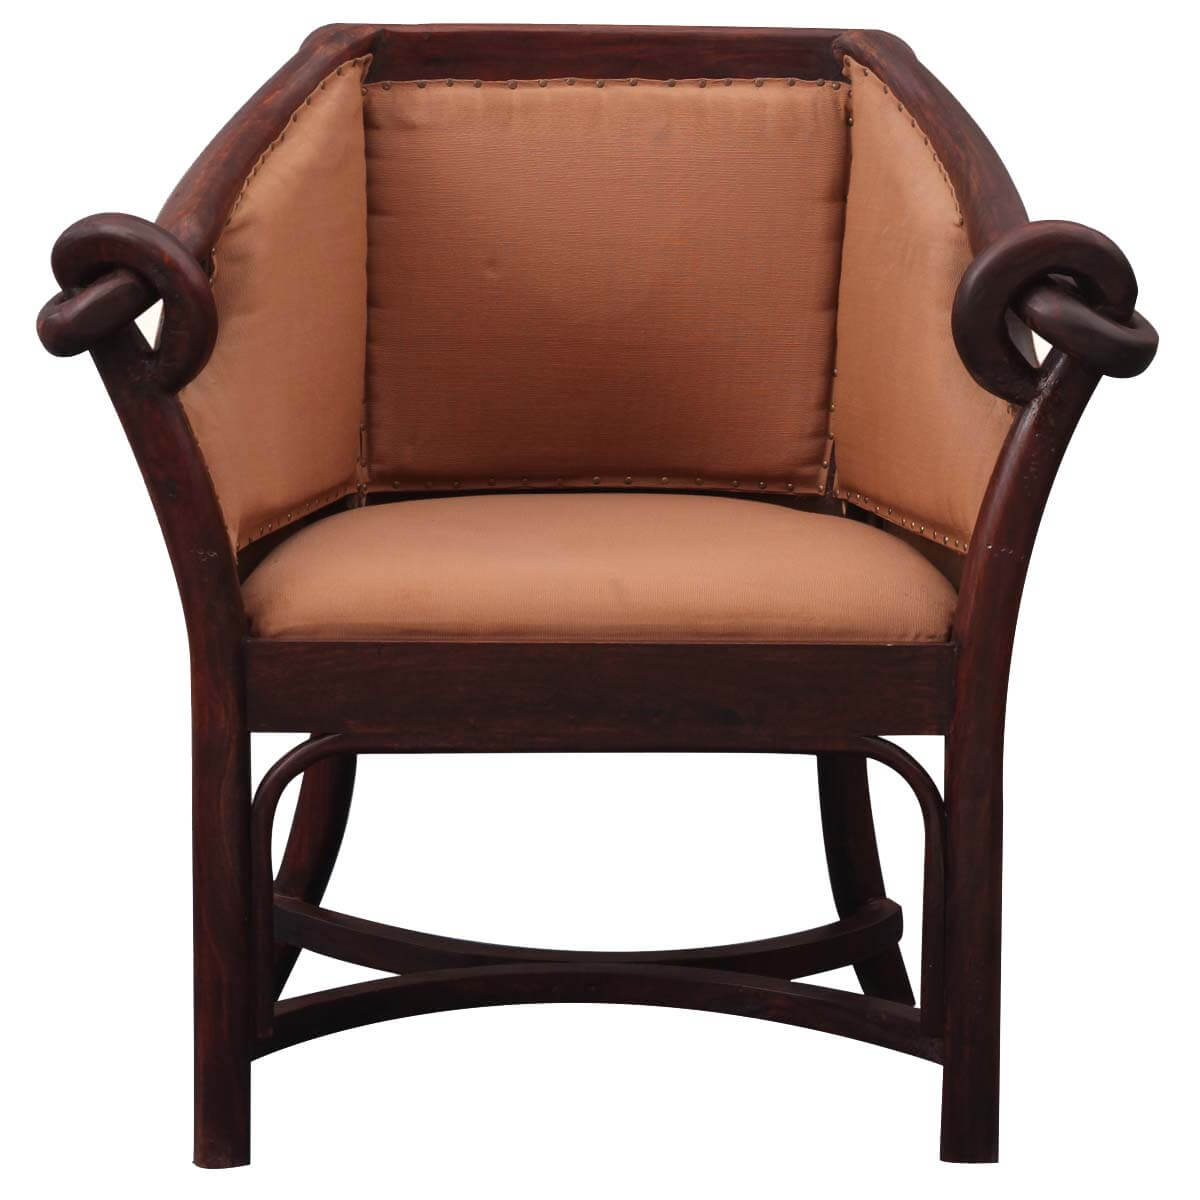 Modern Barrel Chair Contemporary Upholstered Indian Rosewood Barrel Chair